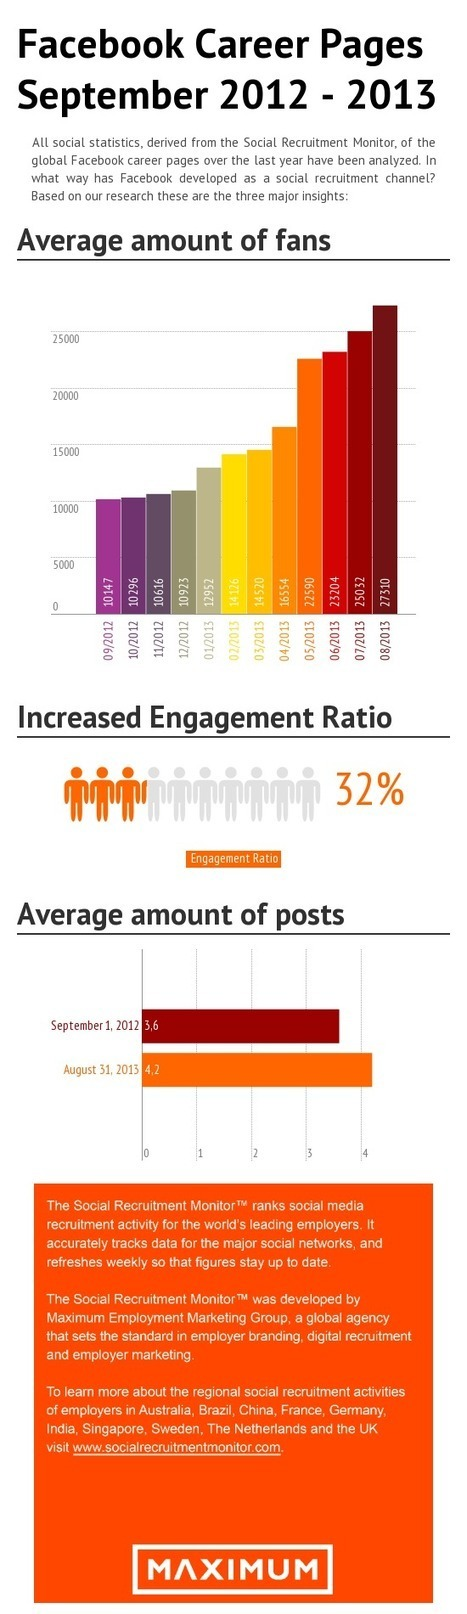 Engagement on Facebook Career Pages Increases by 32% in One Year | Marketing RH 2.0 & Marque employeur | Scoop.it